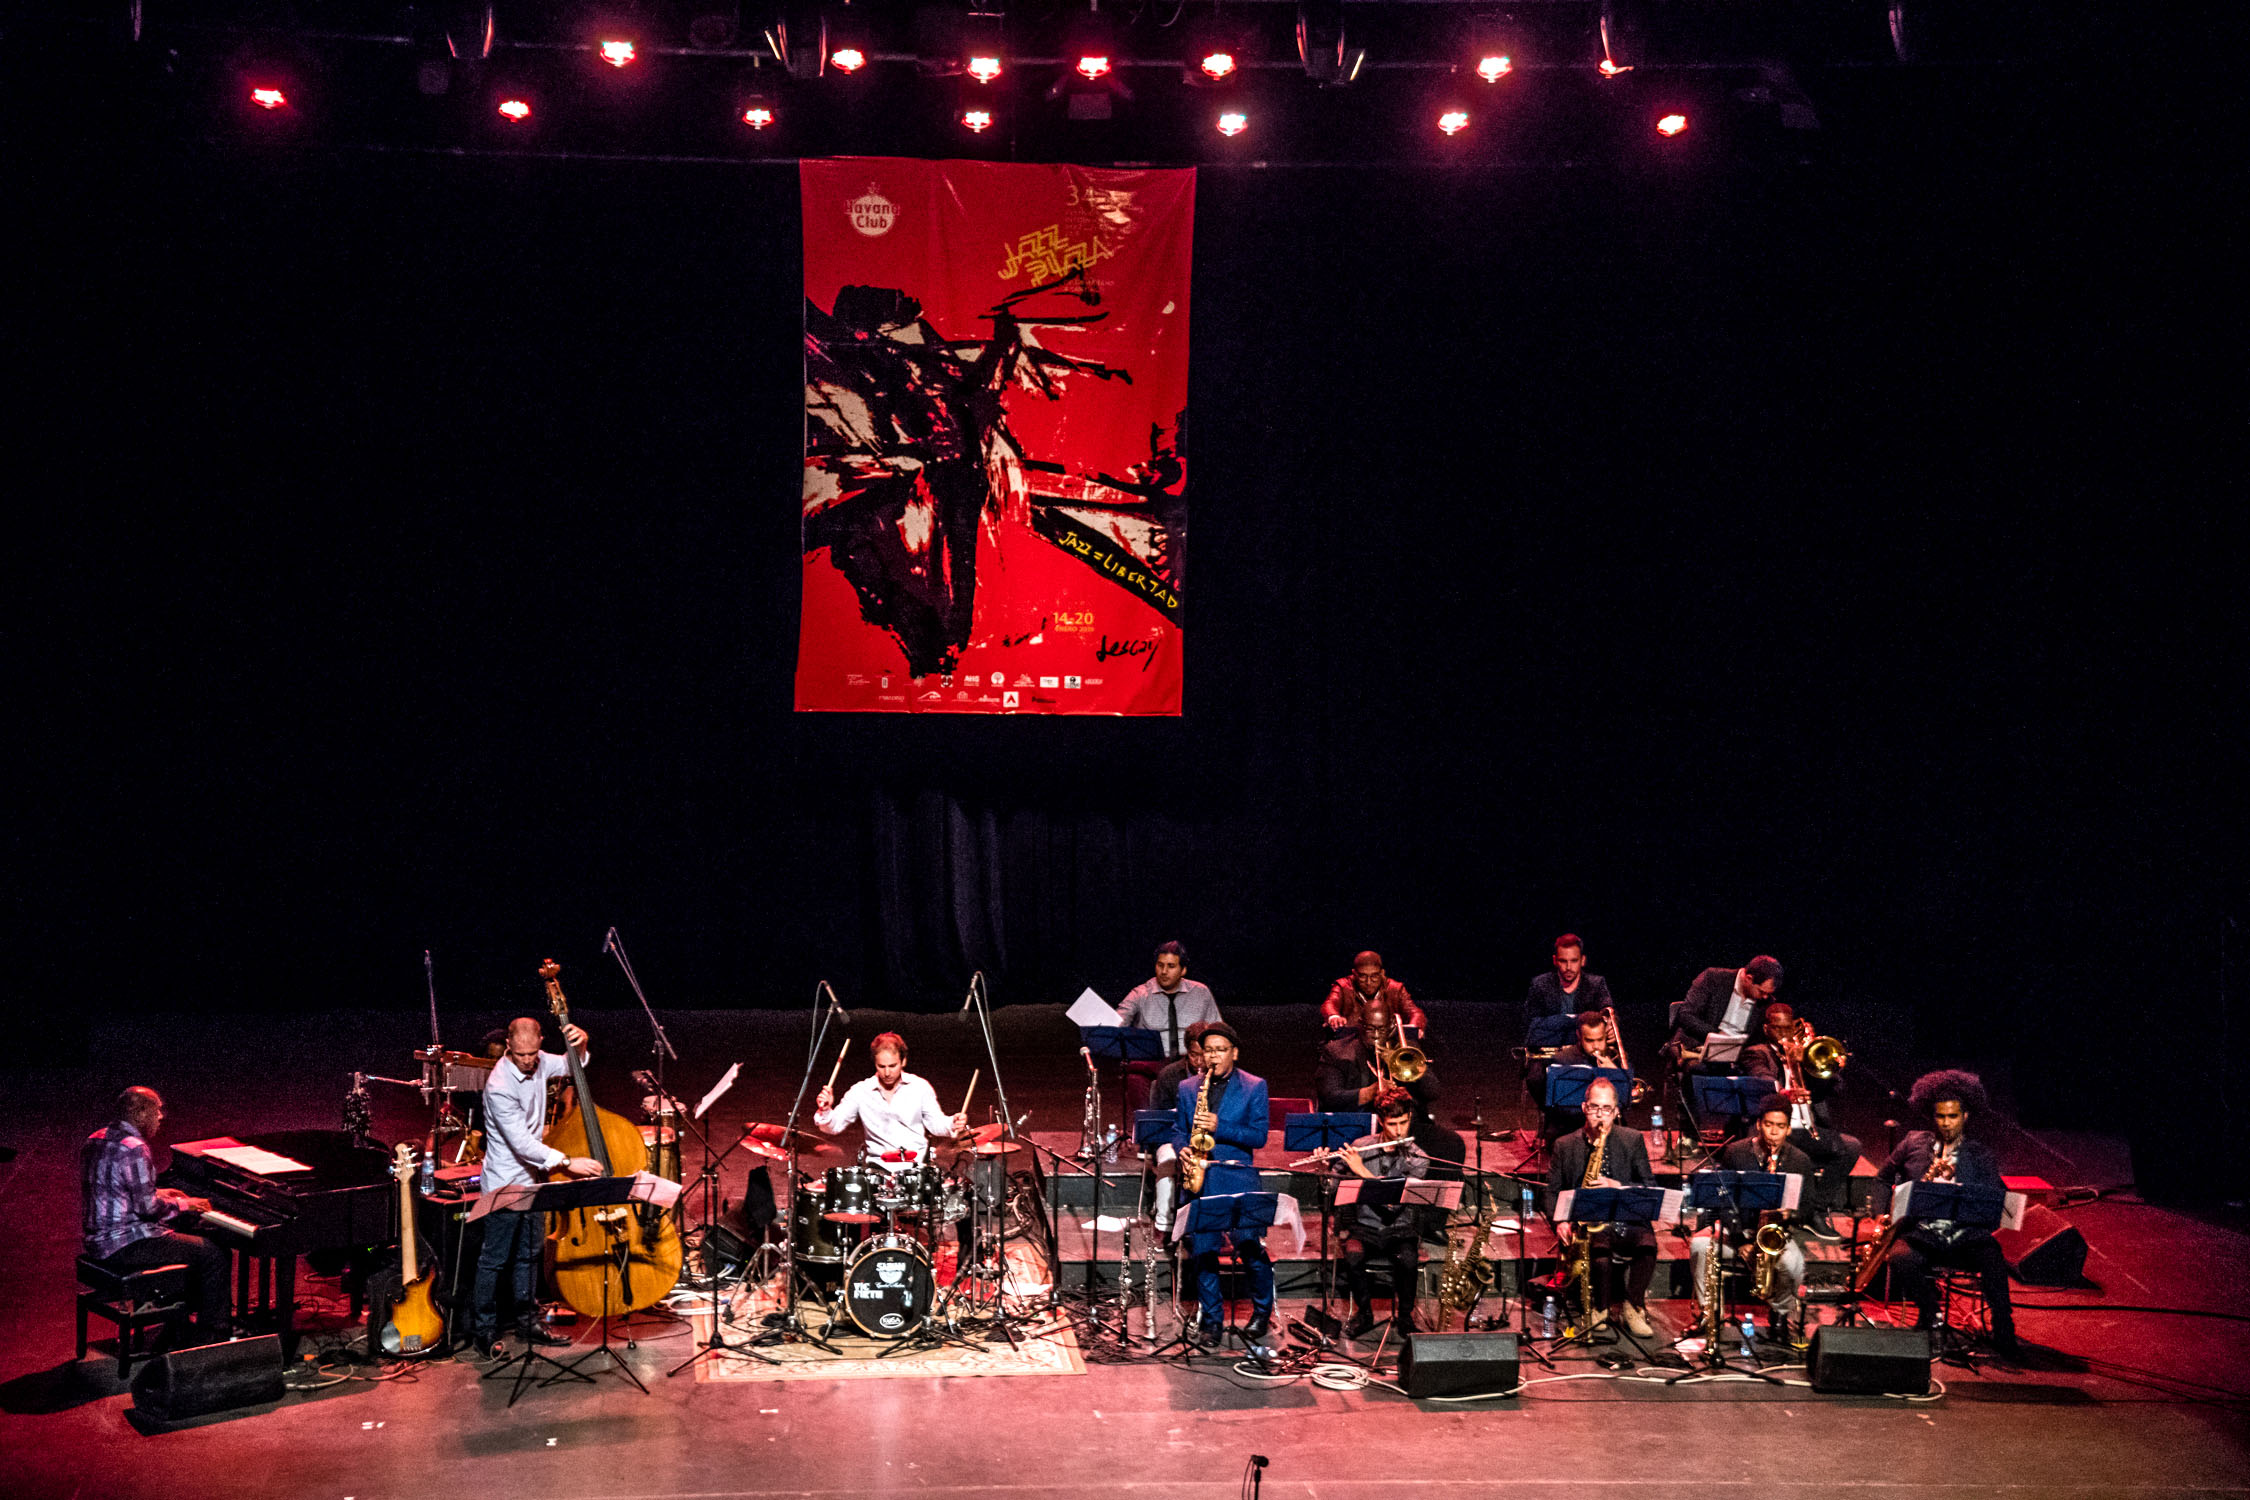 Dafnis Prieto Big Band at Teatro Mella, Havana, Cuba, January 2019 (Photo by David Garten)